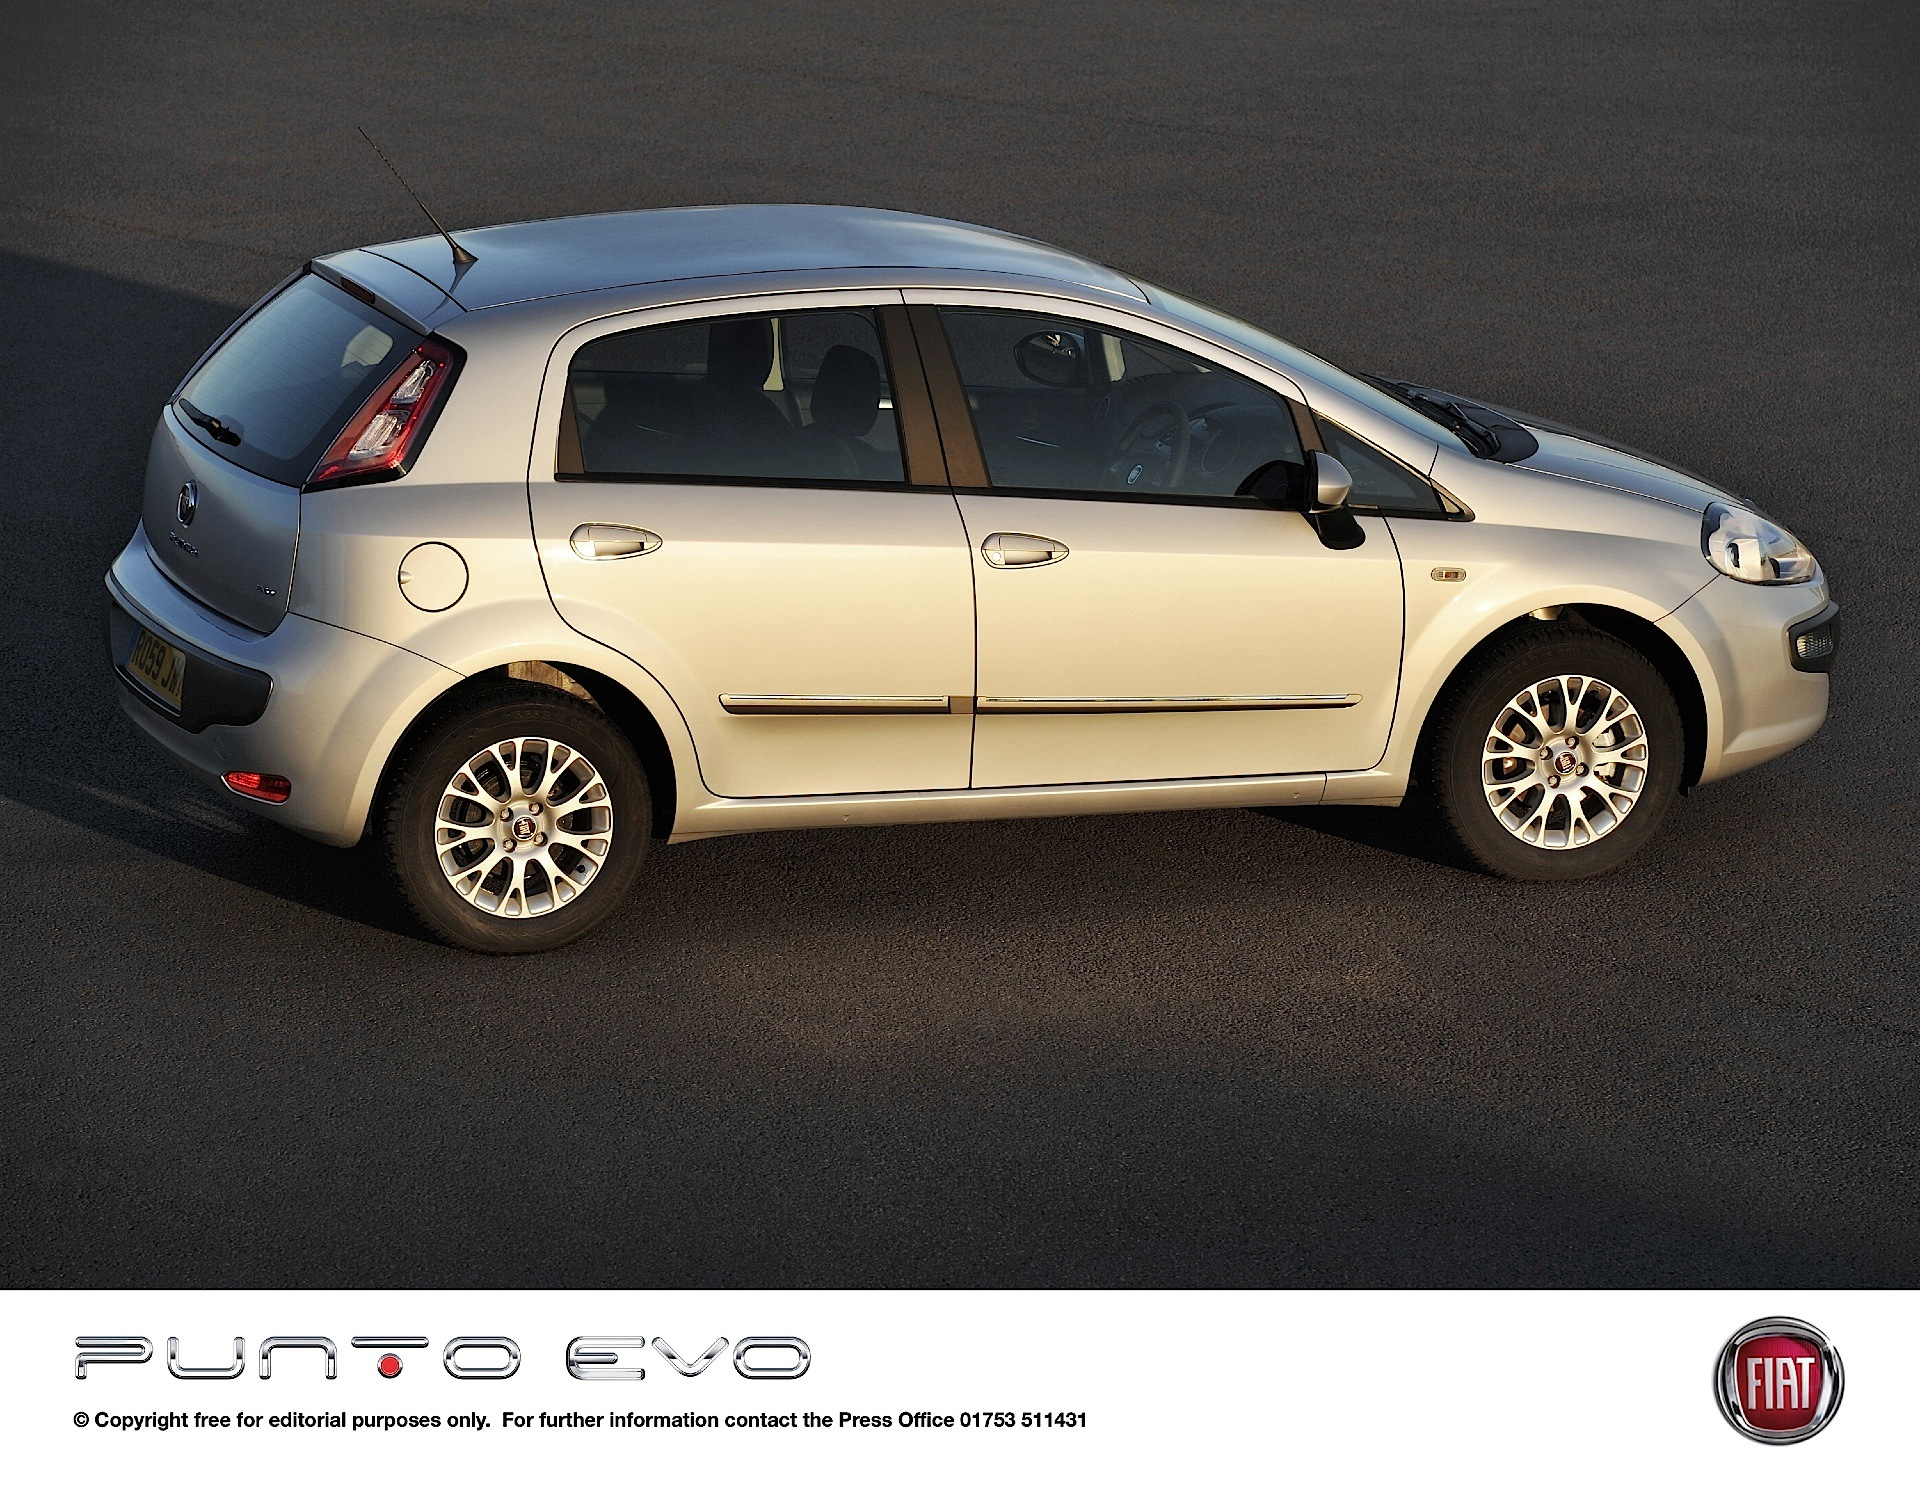 fiat punto evo 5 doors specs 2009 2010 2011 2012. Black Bedroom Furniture Sets. Home Design Ideas